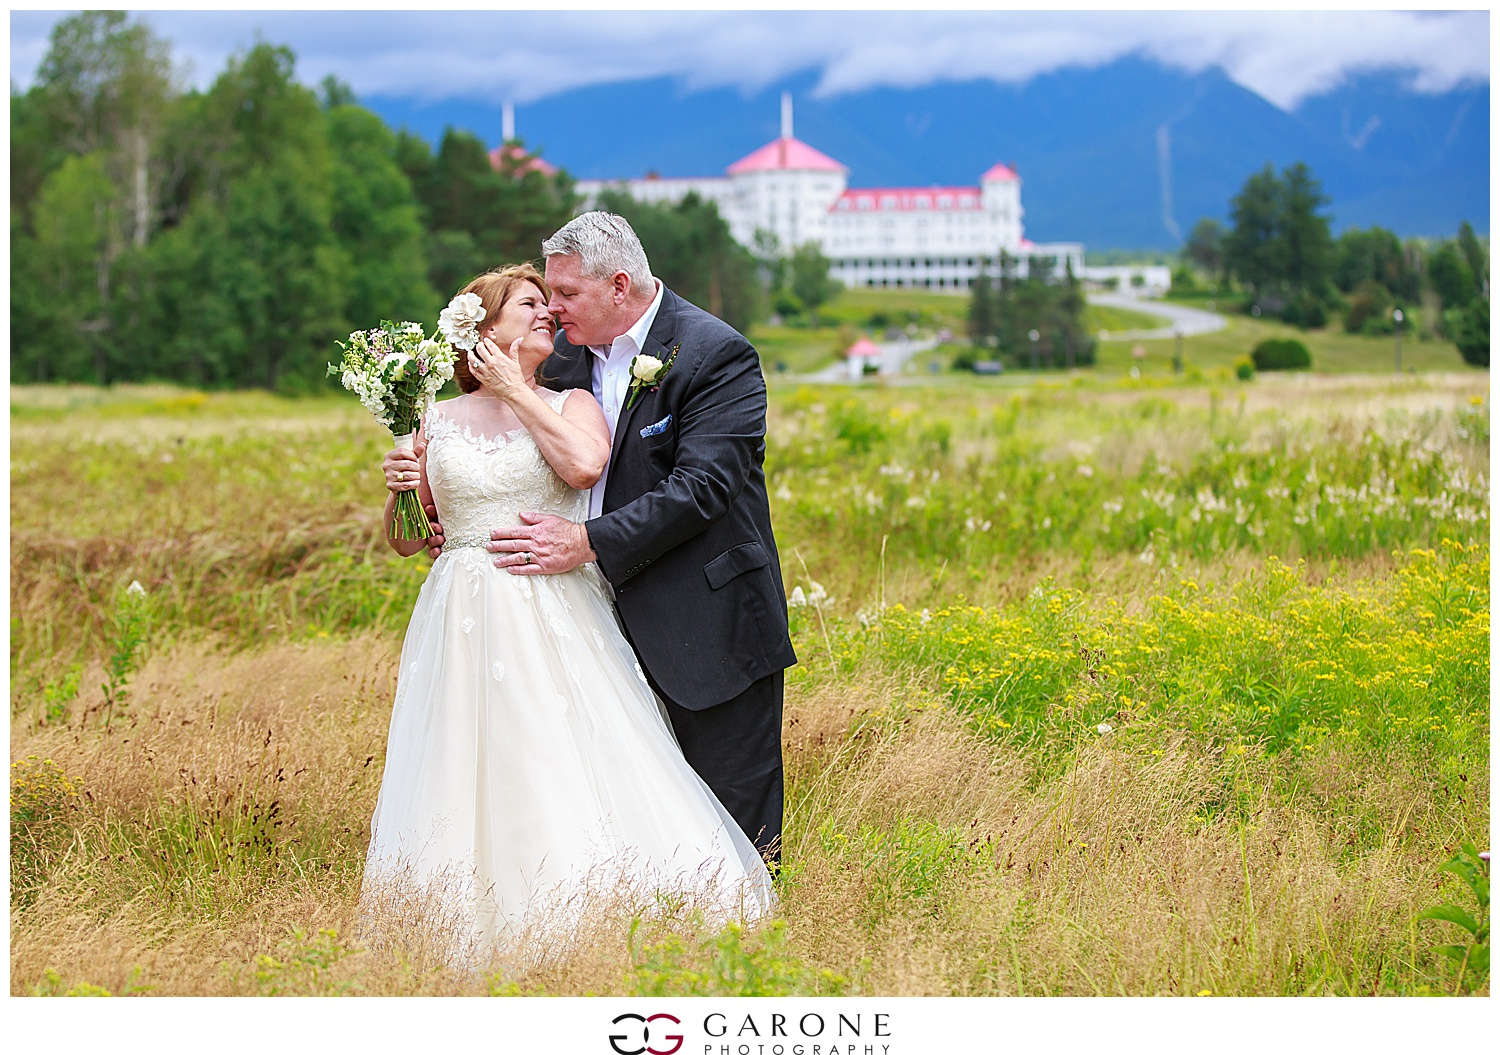 Brian_Kelly_Omni_Mount_Washington_Wedding_Garone_Photography_Wedding_NH_Photography_0022.jpg